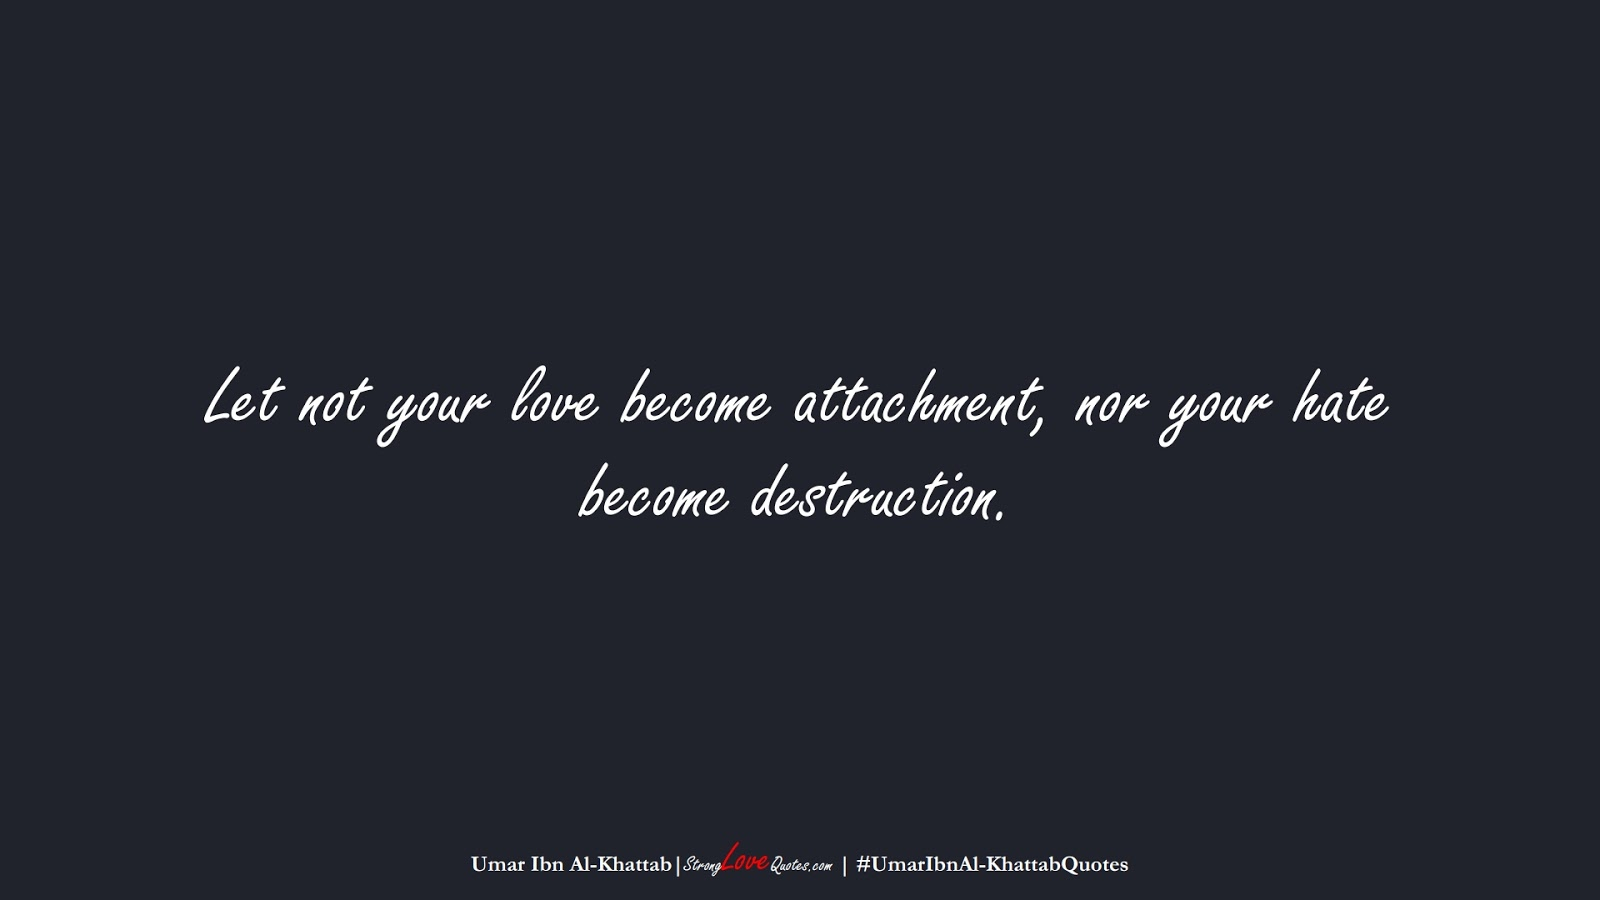 Let not your love become attachment, nor your hate become destruction. (Umar Ibn Al-Khattab);  #UmarIbnAl-KhattabQuotes